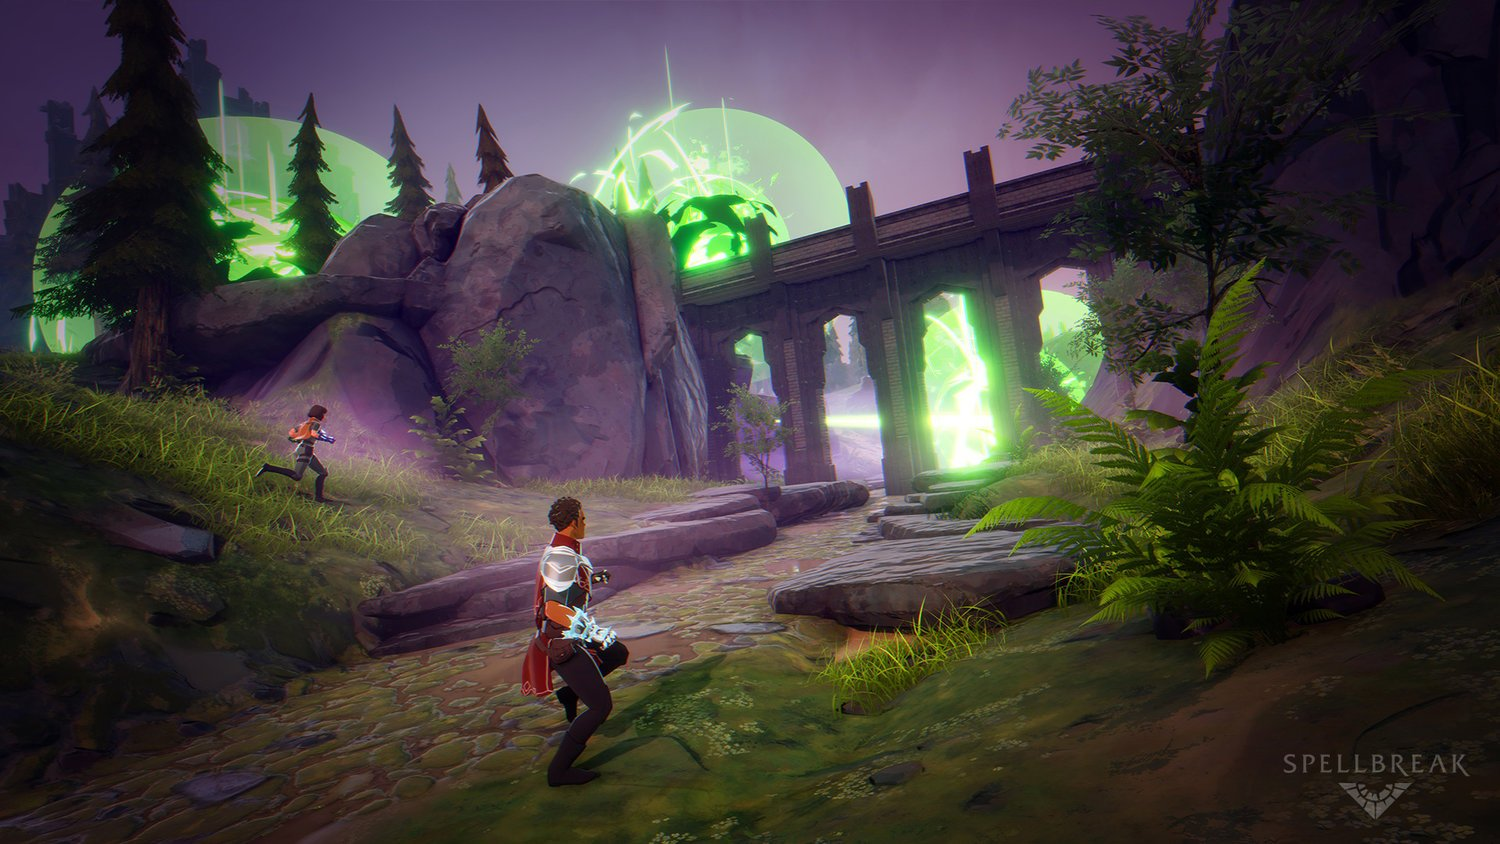 Spellbreak Closed Beta